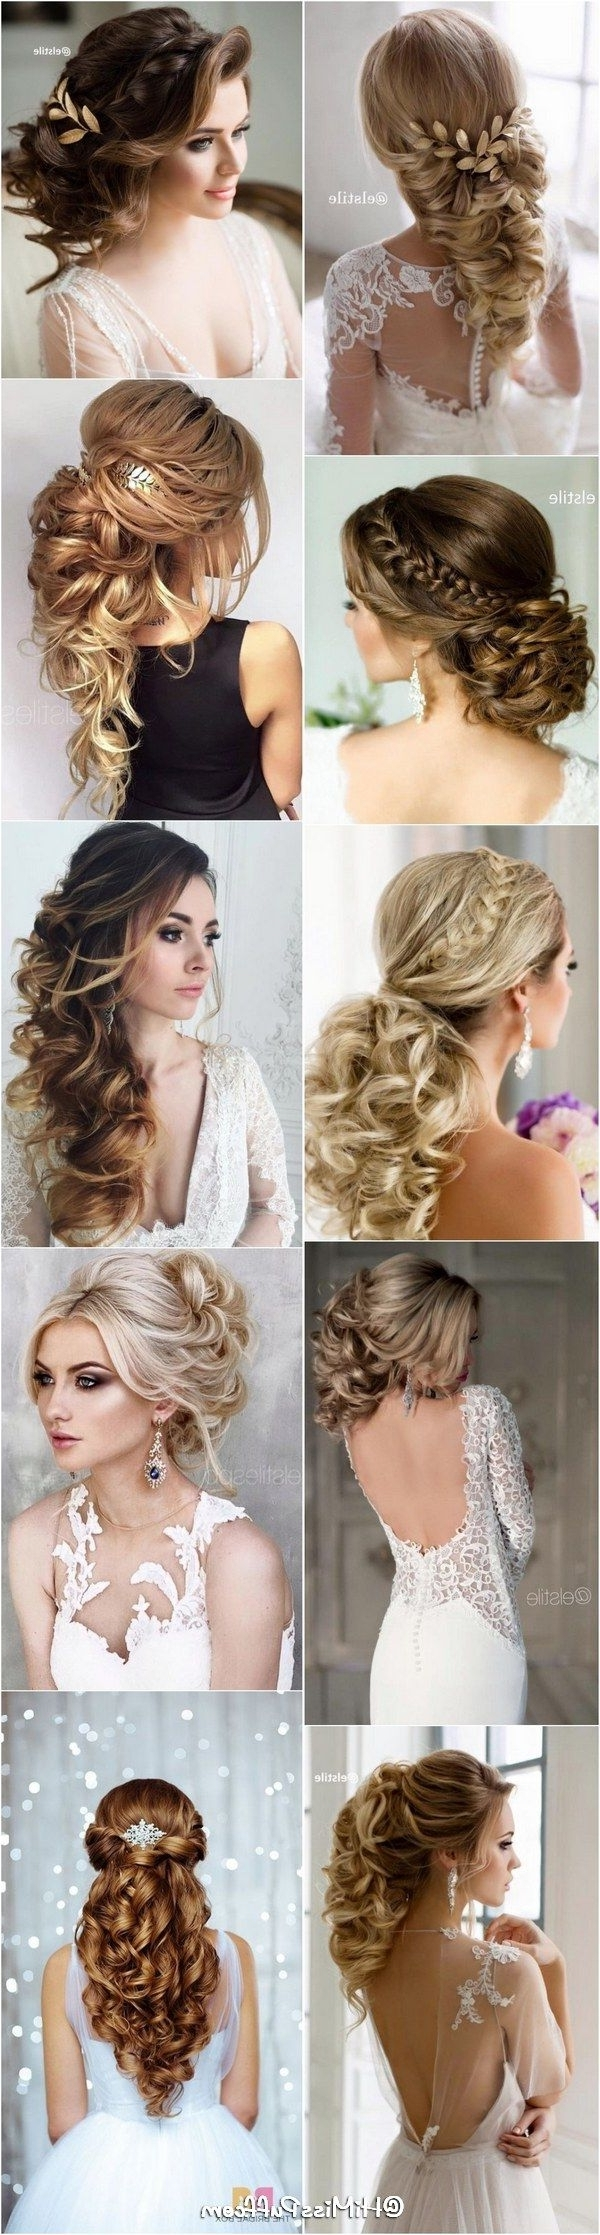 Favorite Wedding Hairstyles For Long Hair With Fringe Regarding Bridal Wedding Hairstyles For Long Hair That Will Inspire / Http (View 4 of 15)